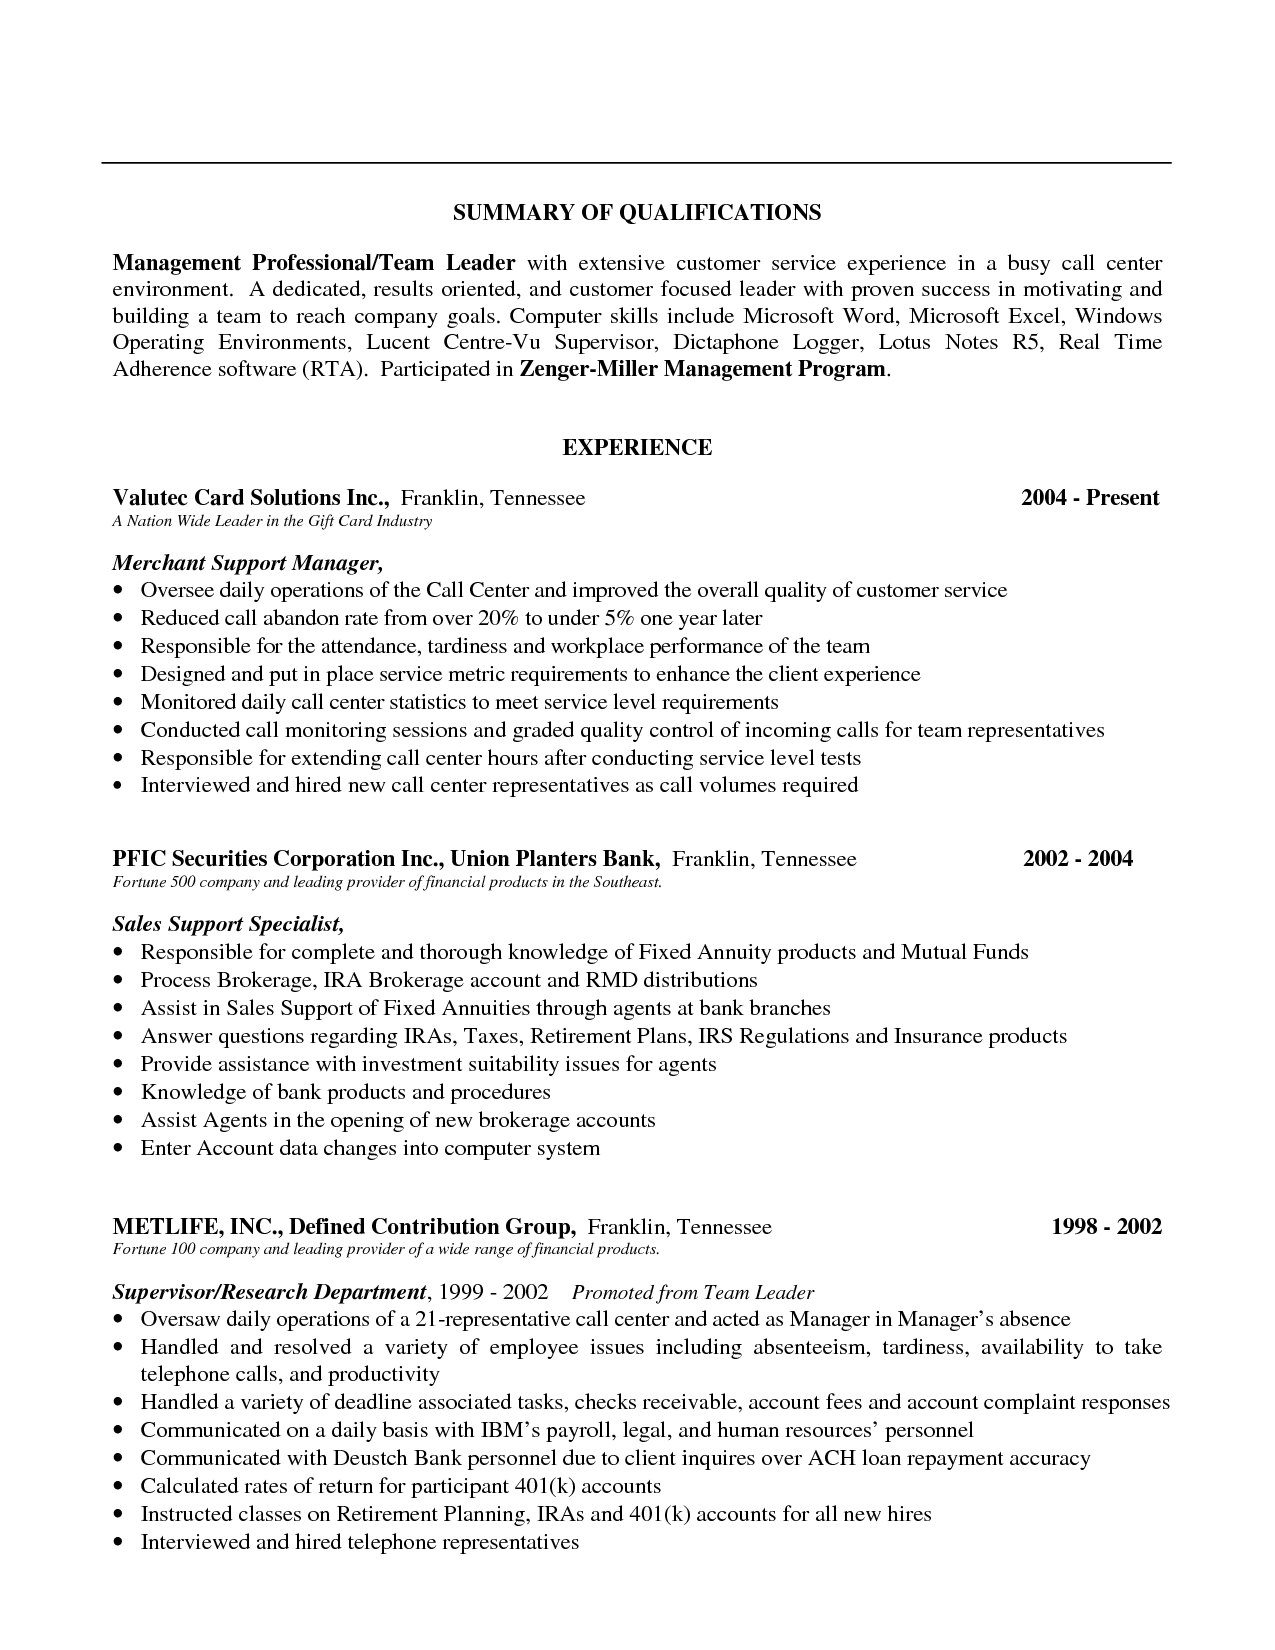 Sample Resume Summary Statements Doc Sample Resumes Summary Qualifications Buyer Resume Statement